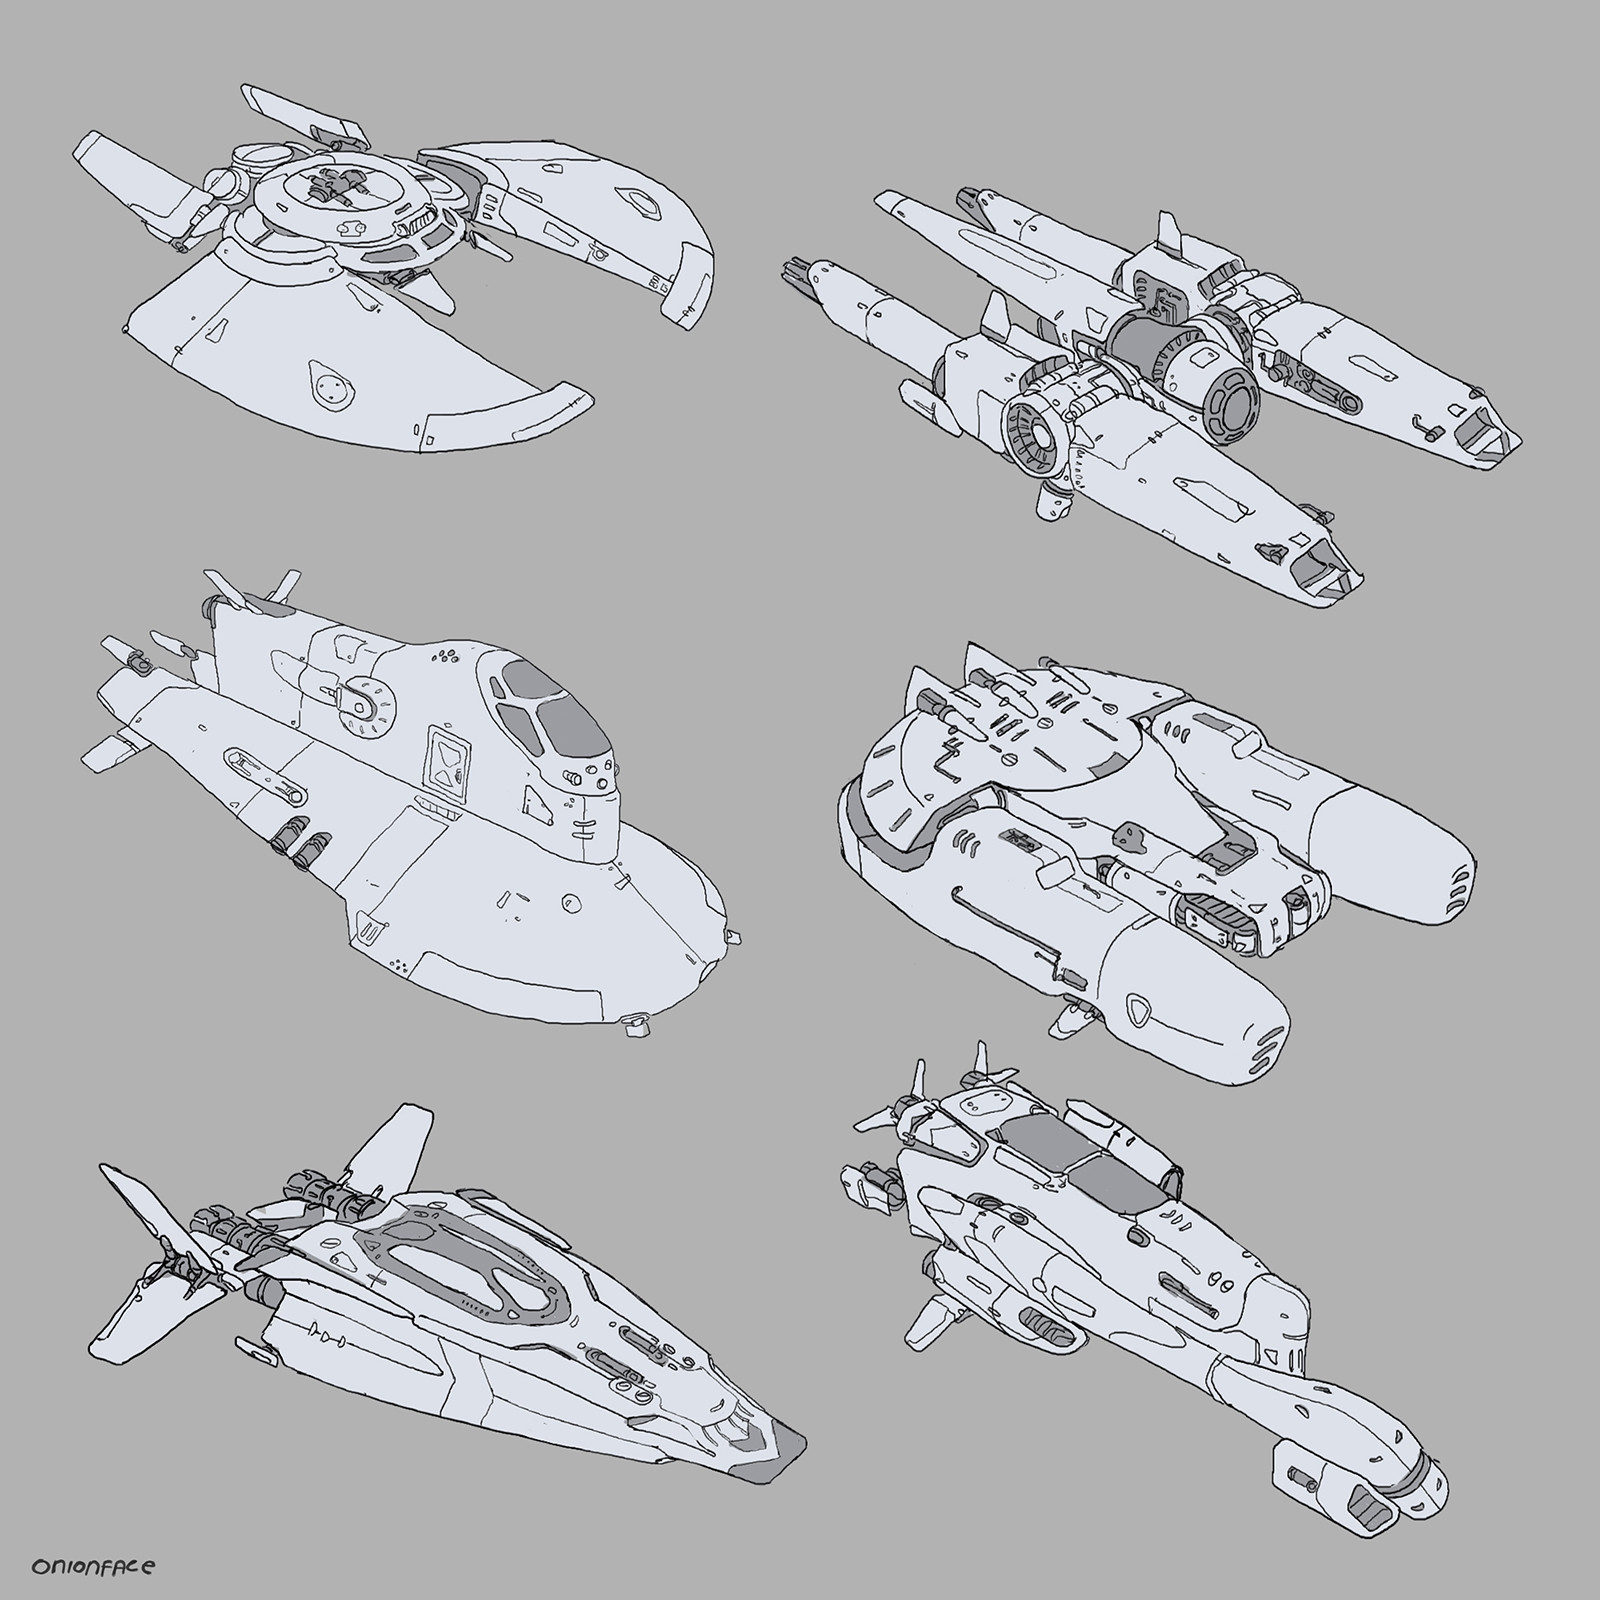 West clendinning sparth ships 03 small